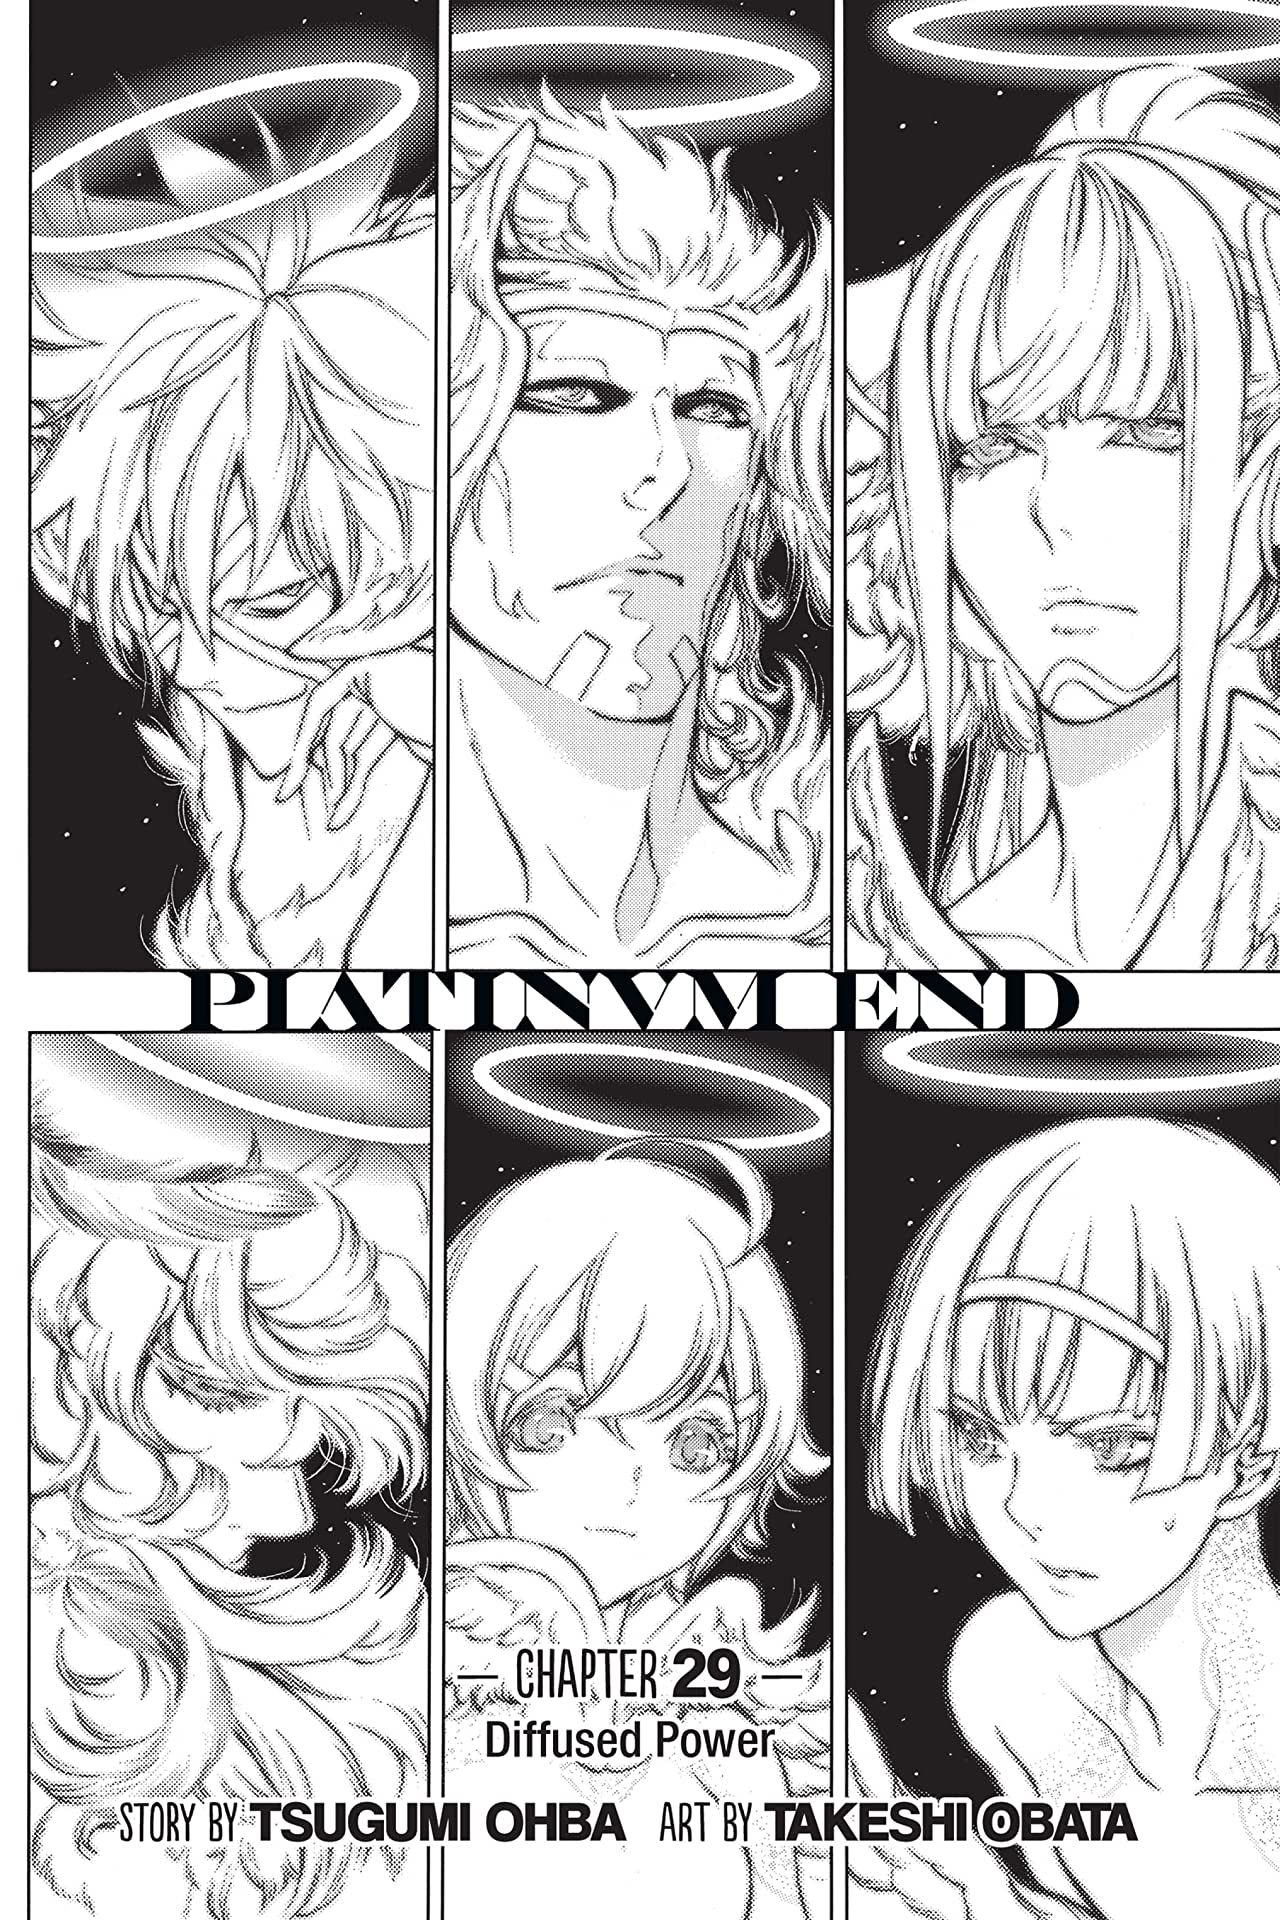 Platinum End: Chapter 29